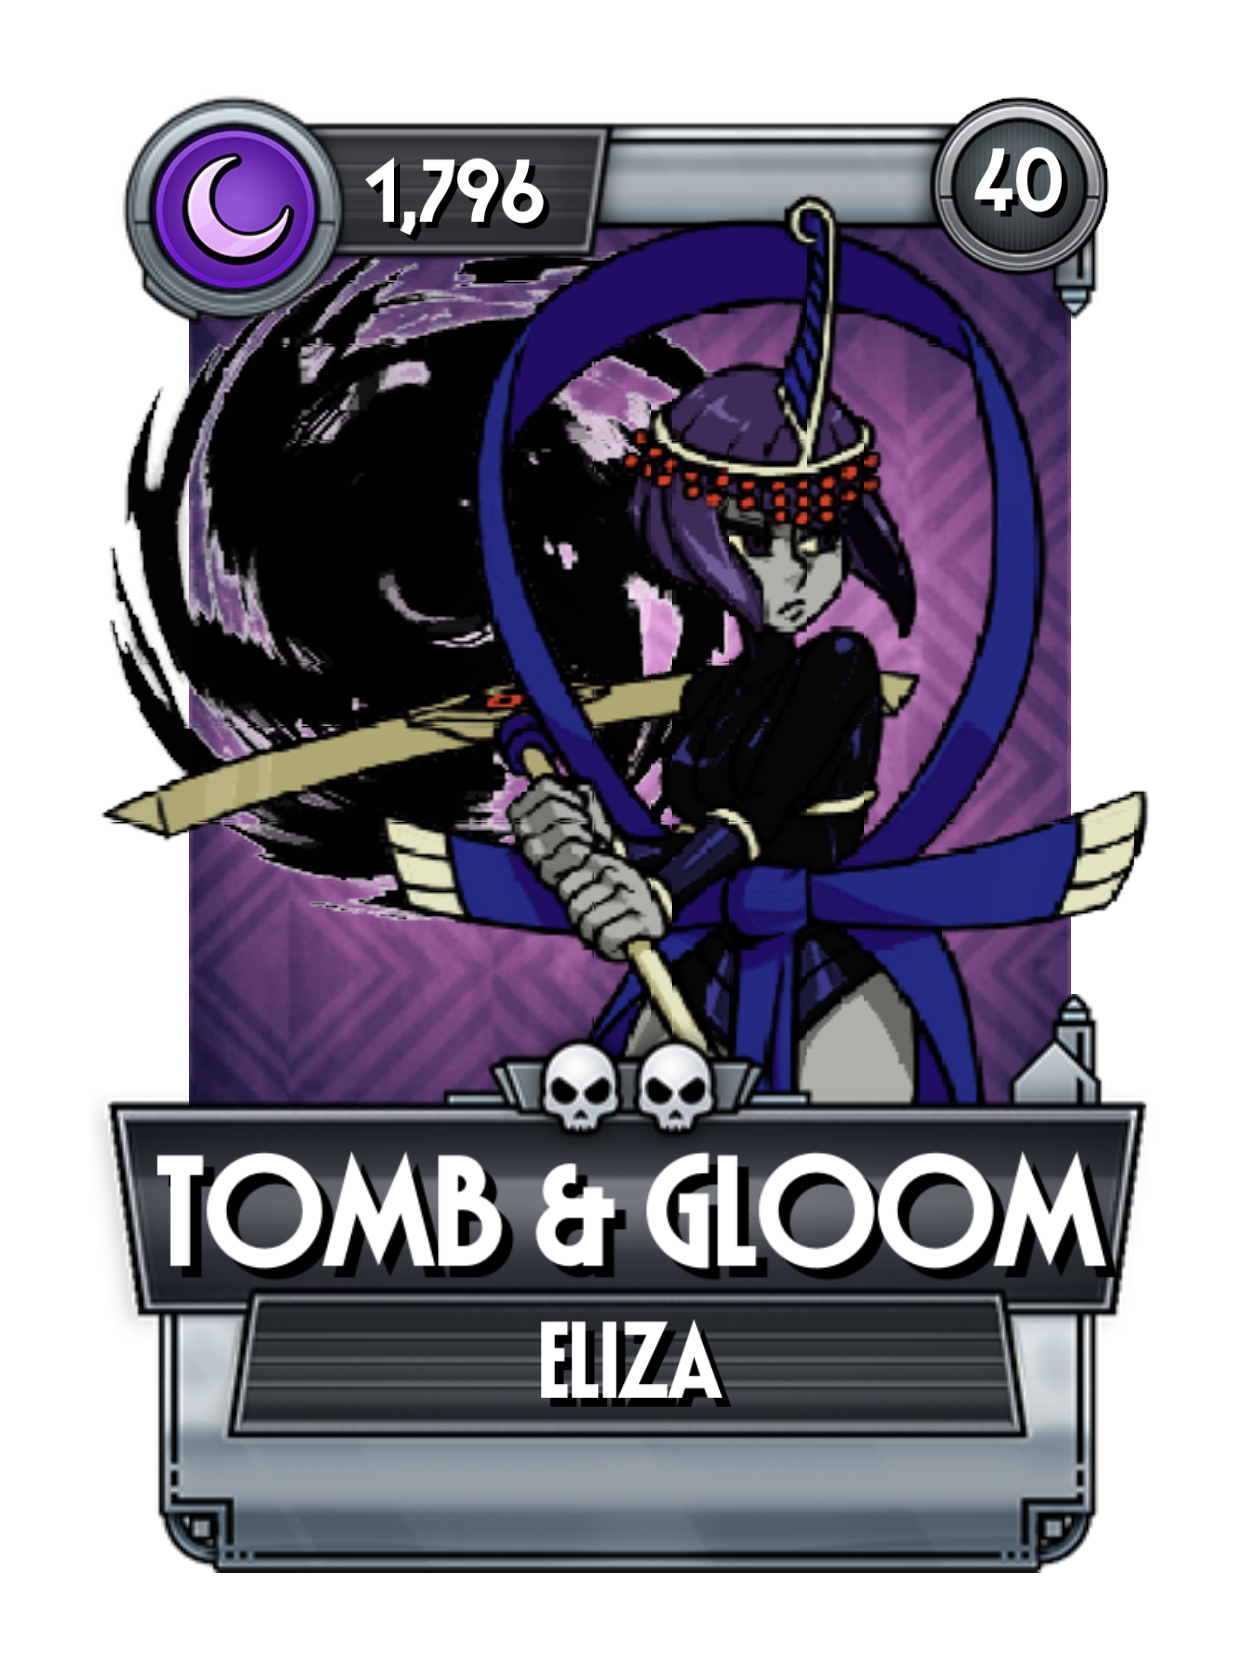 Tomb & Gloom